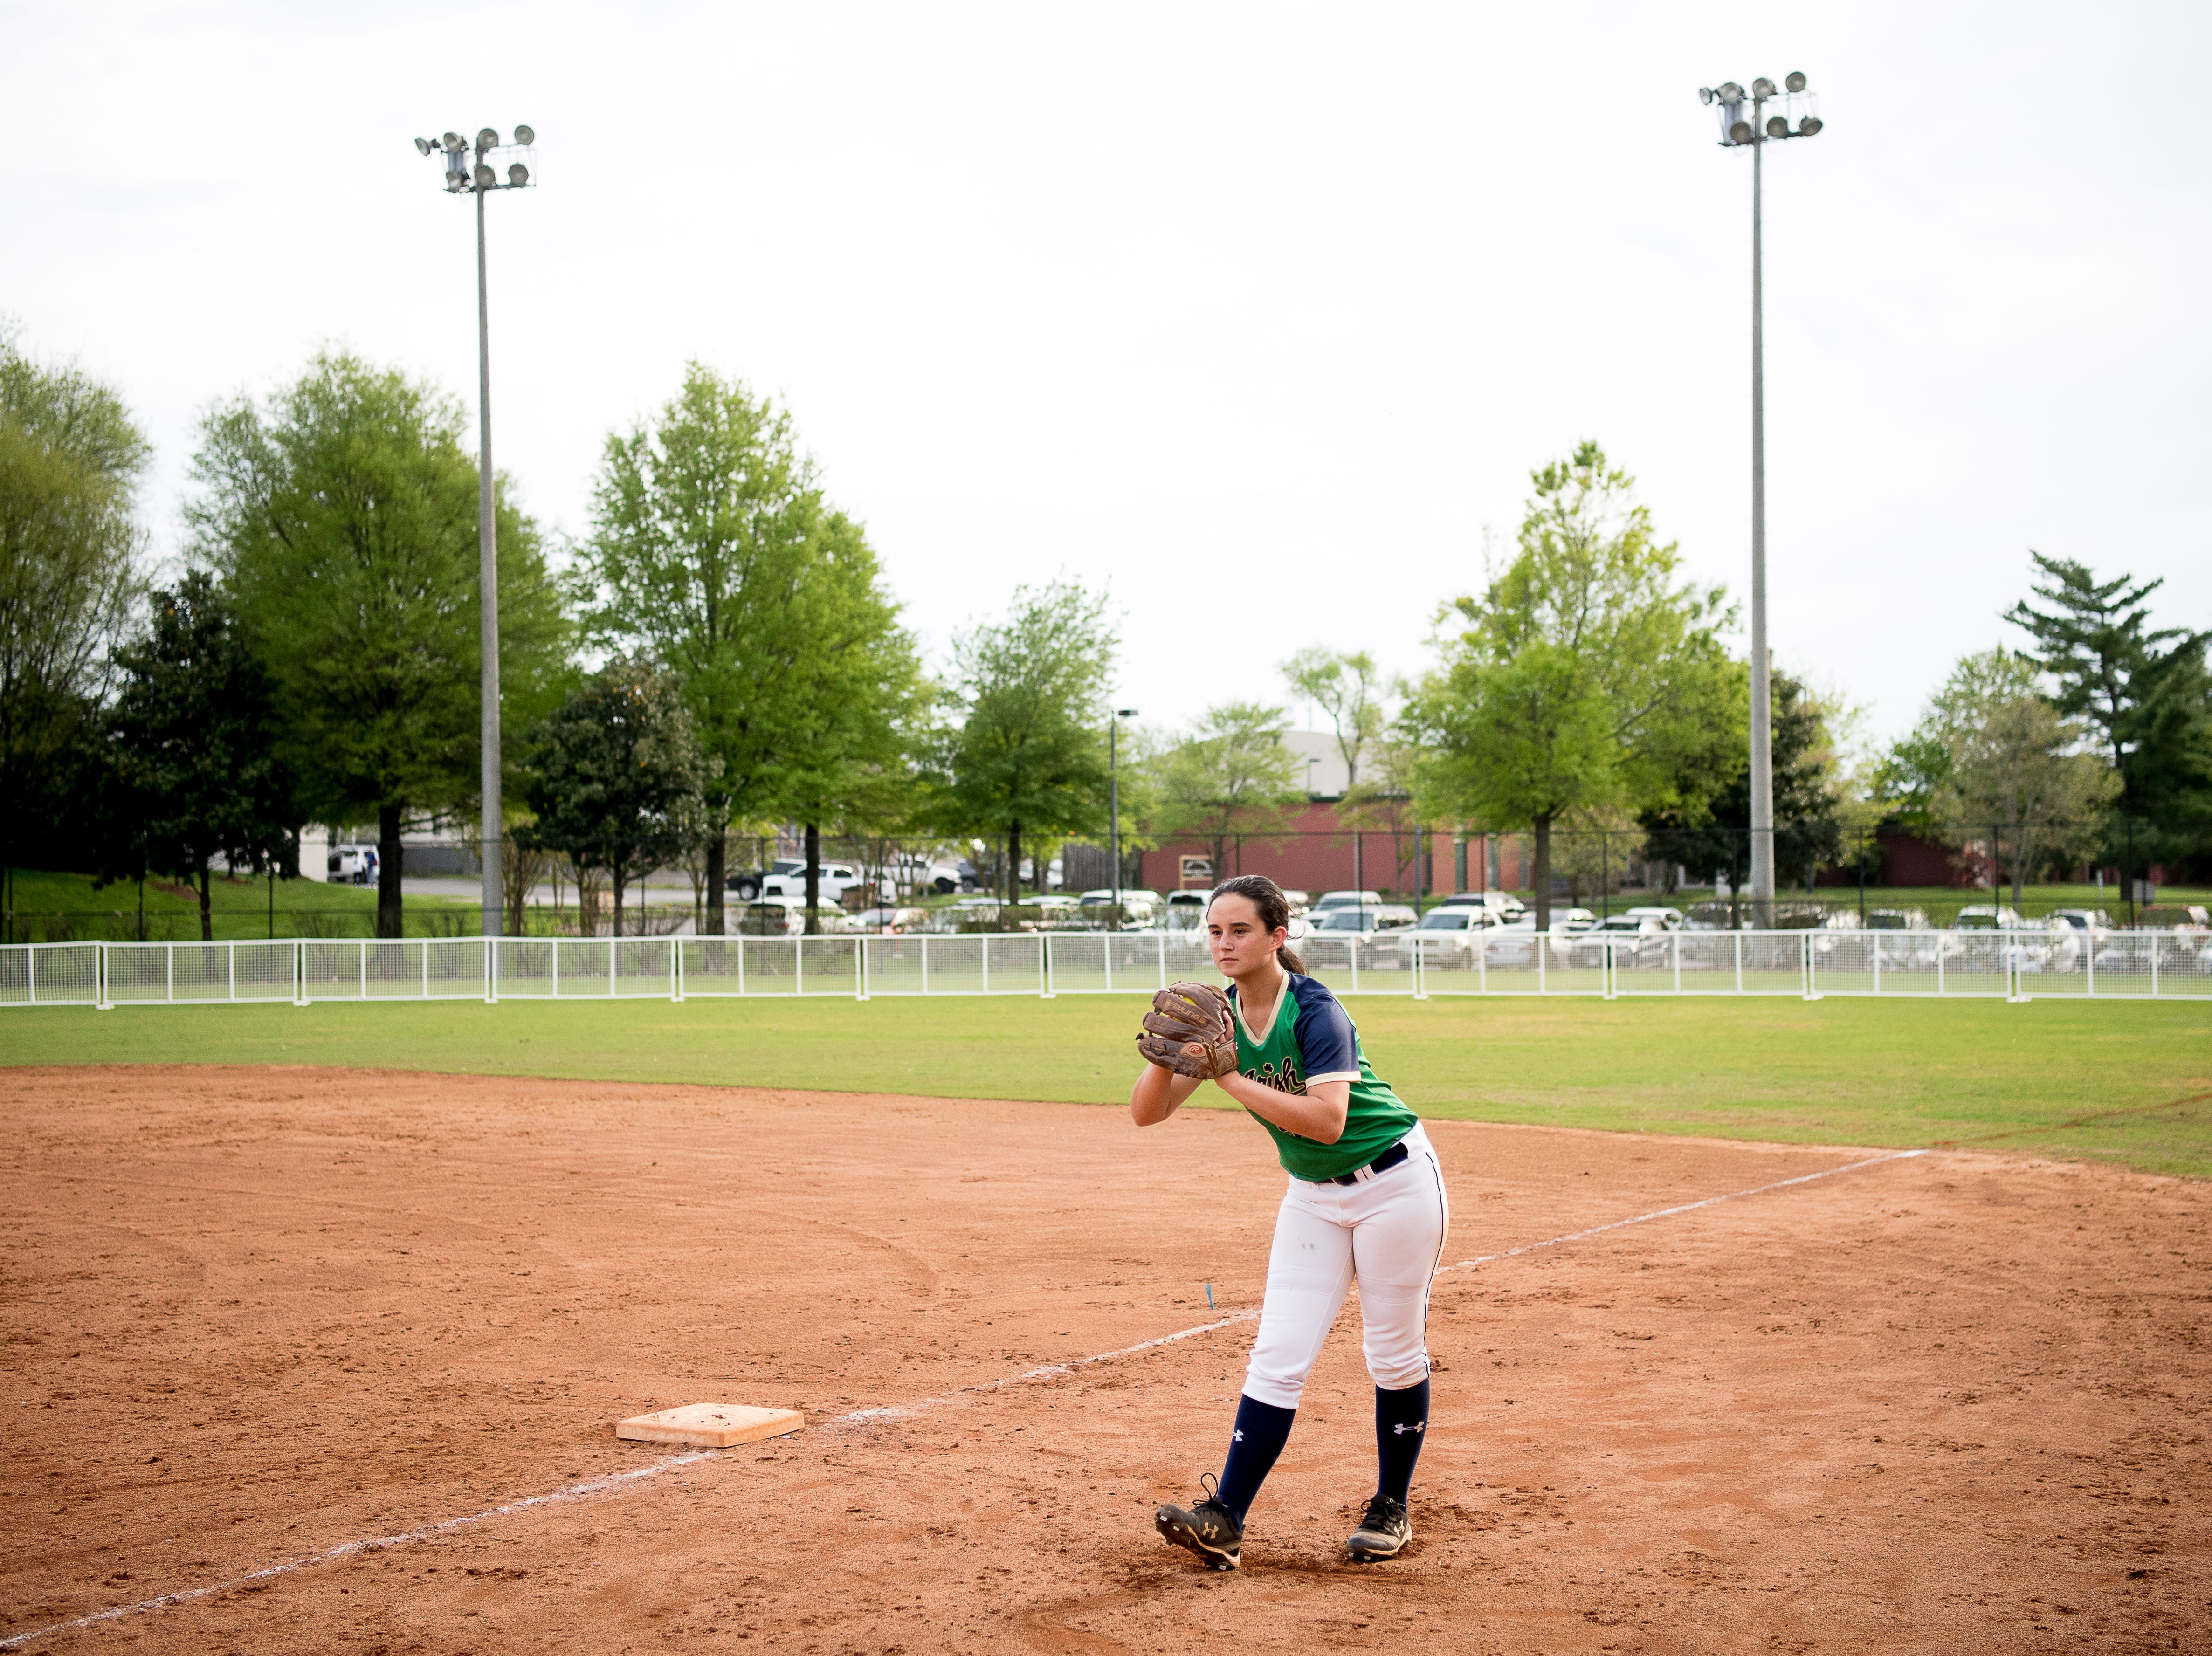 Catholic's Emma Schaad (55) warms up before a softball game at Caswell Park in Knoxville, Tennessee on Friday, April 12, 2019.